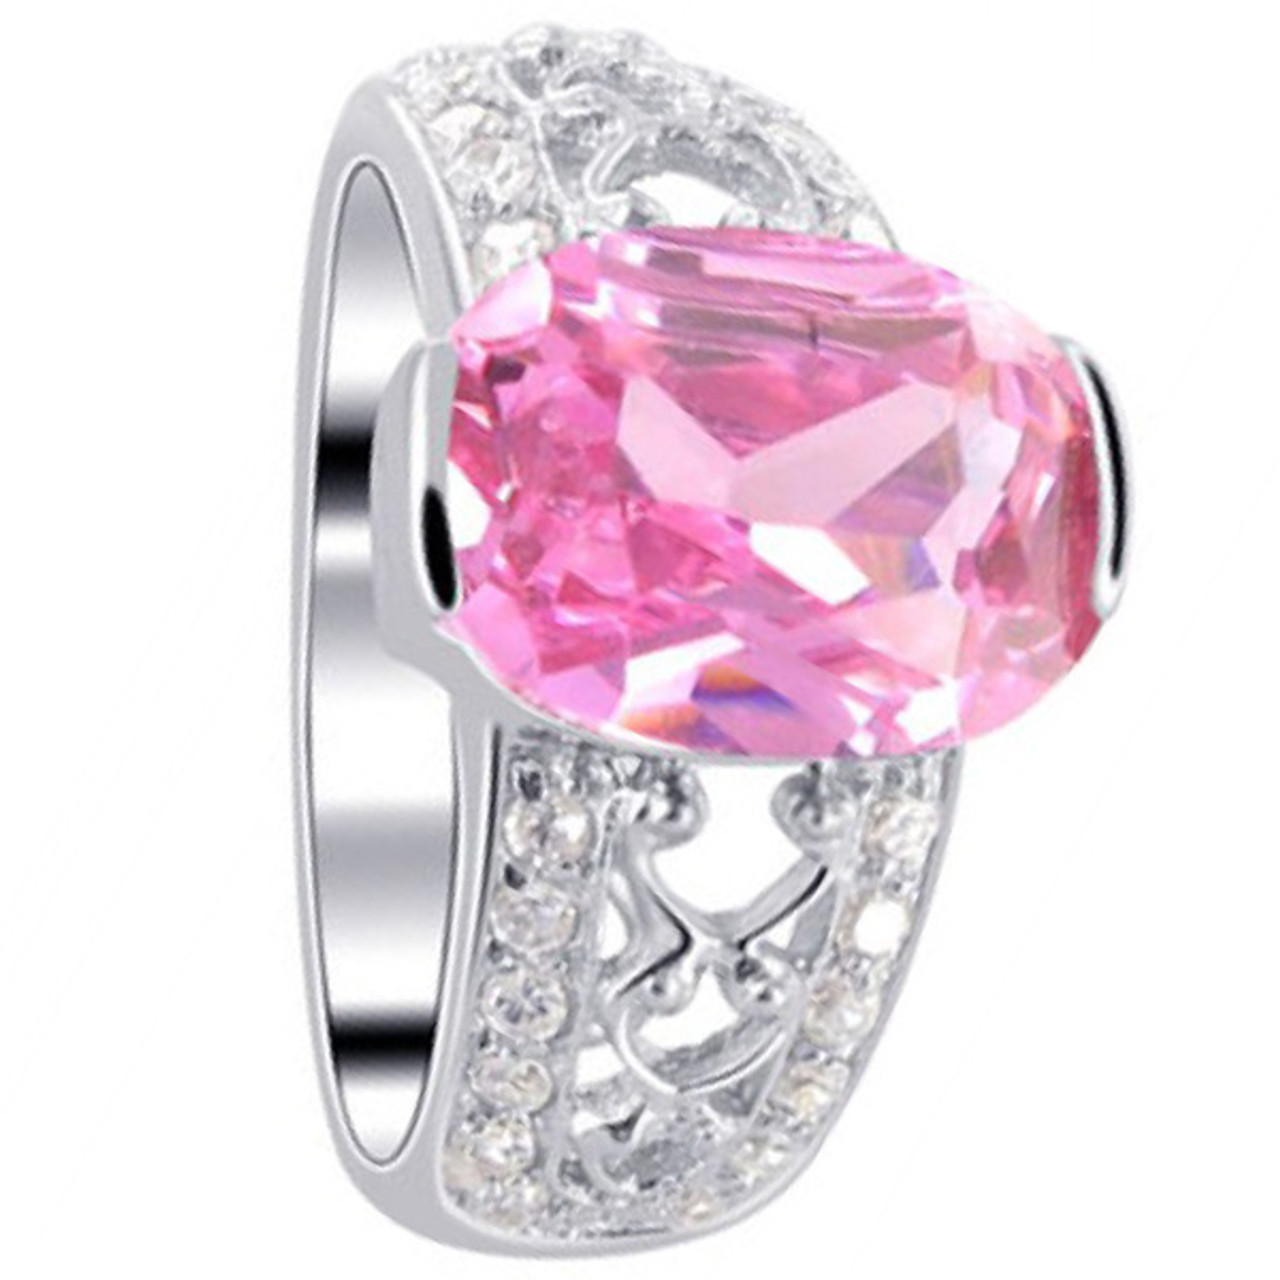 925 Sterling Silver Oval Pink Cubic Zirconia Solitaire Ring